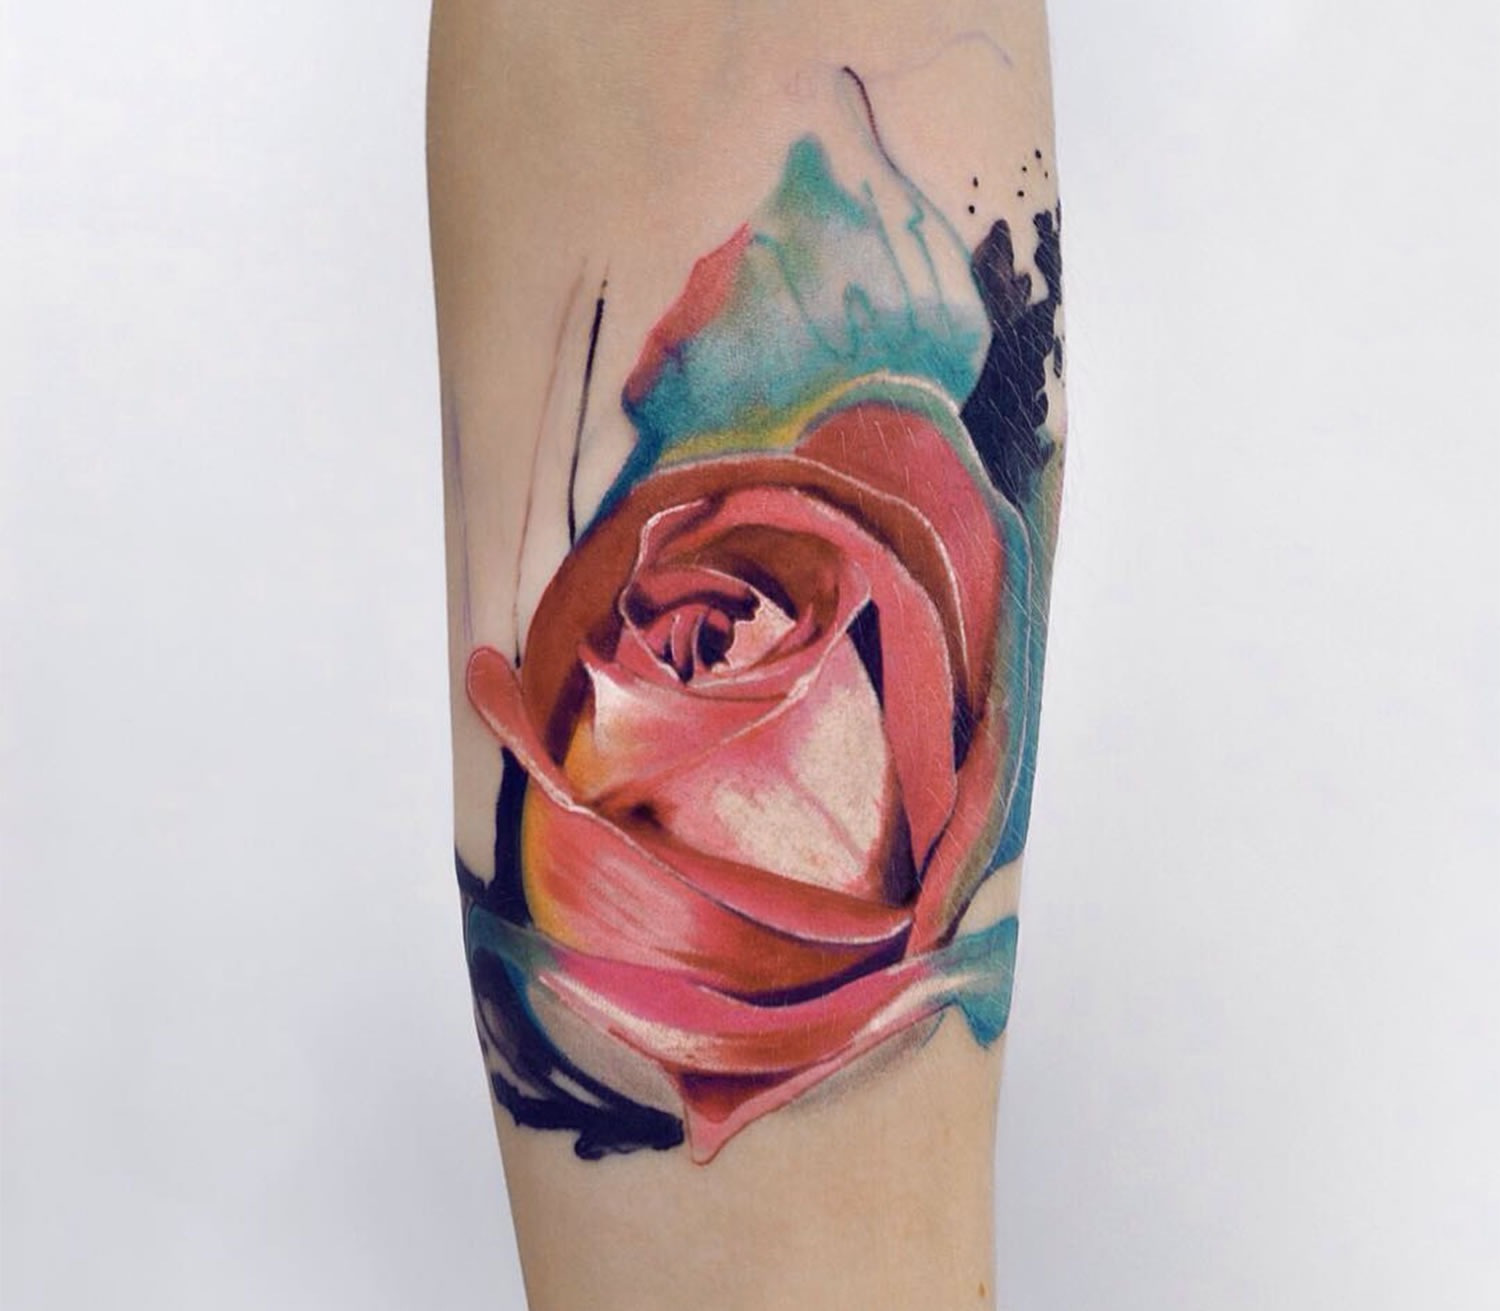 rose tattoo, painterly style